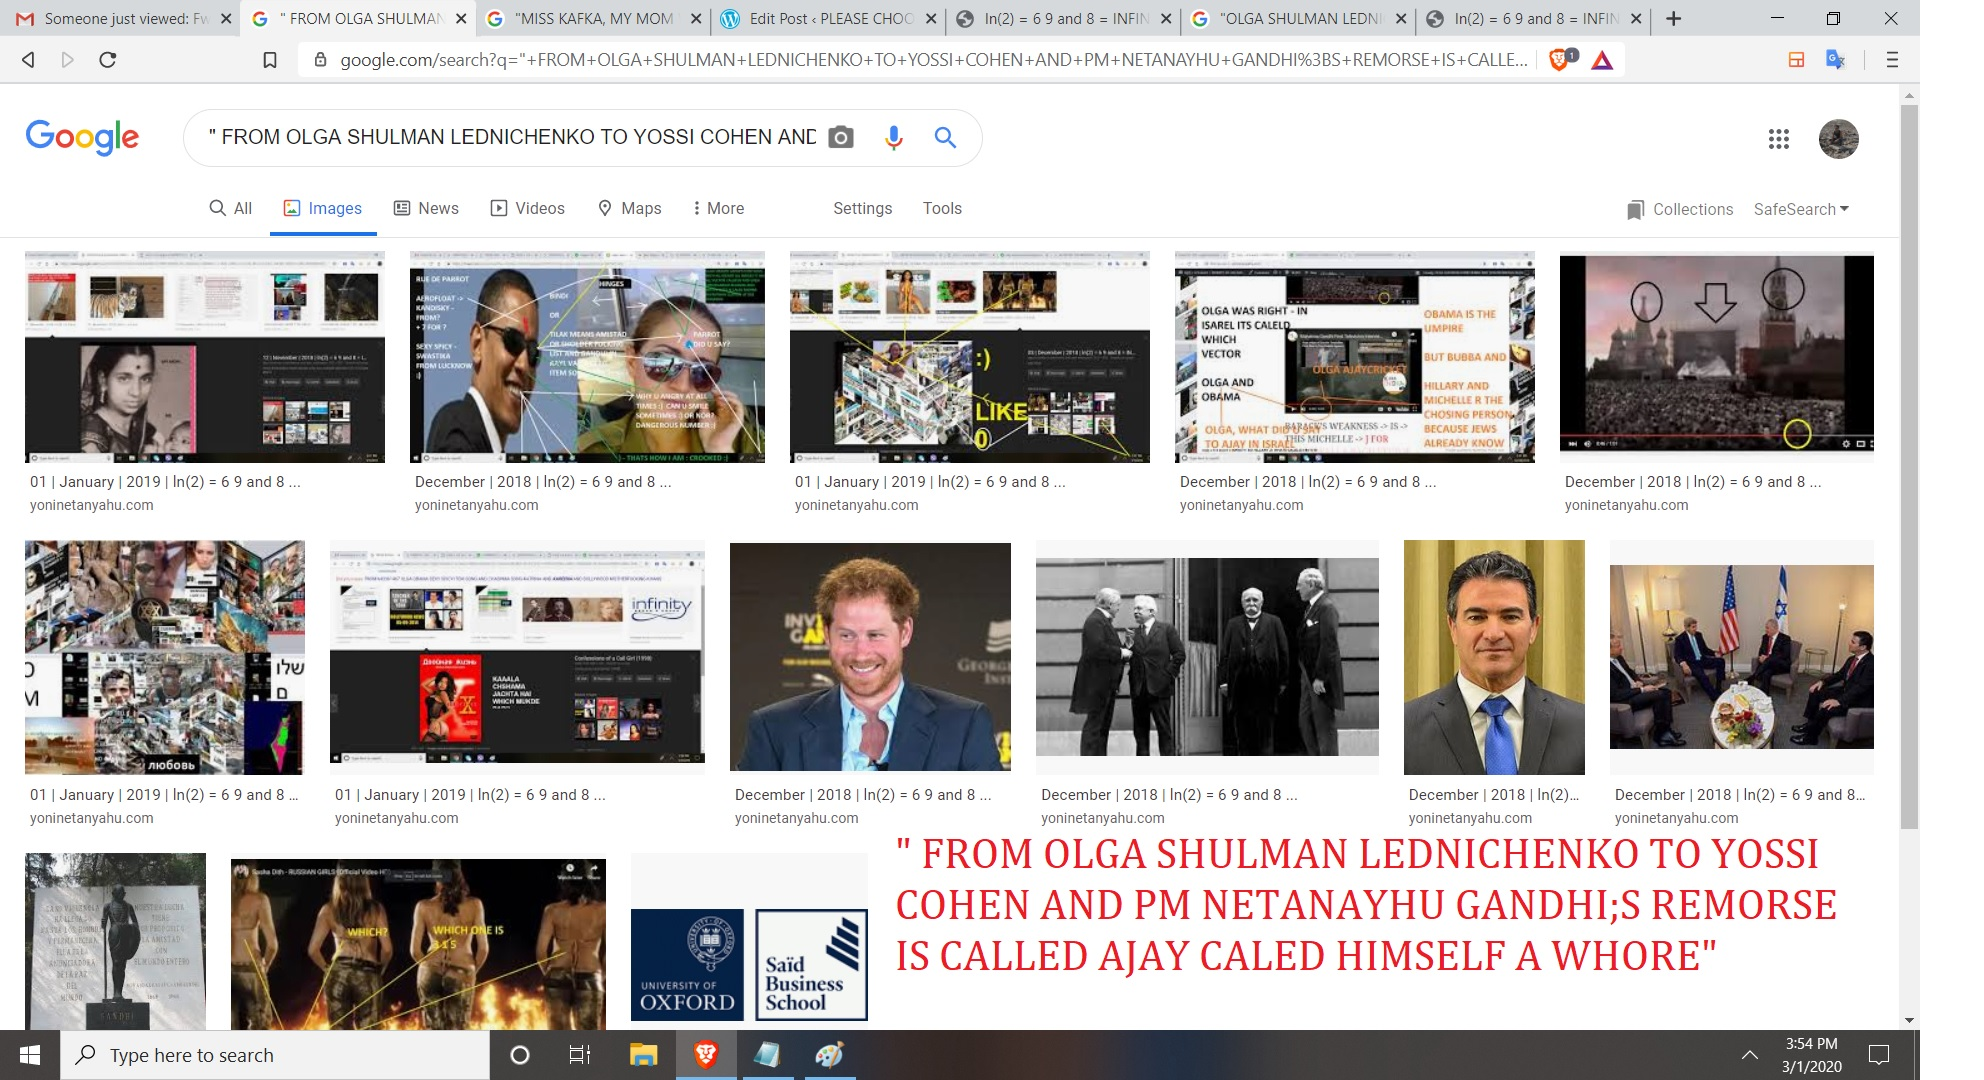 FROM OLGA SHULMAN LEDNICHENKO TO YOSSI COHEN AND PM NETANAYHU GANDHI;S REMORSE IS CALLED AJAY CALED HIMSELF A WHORE